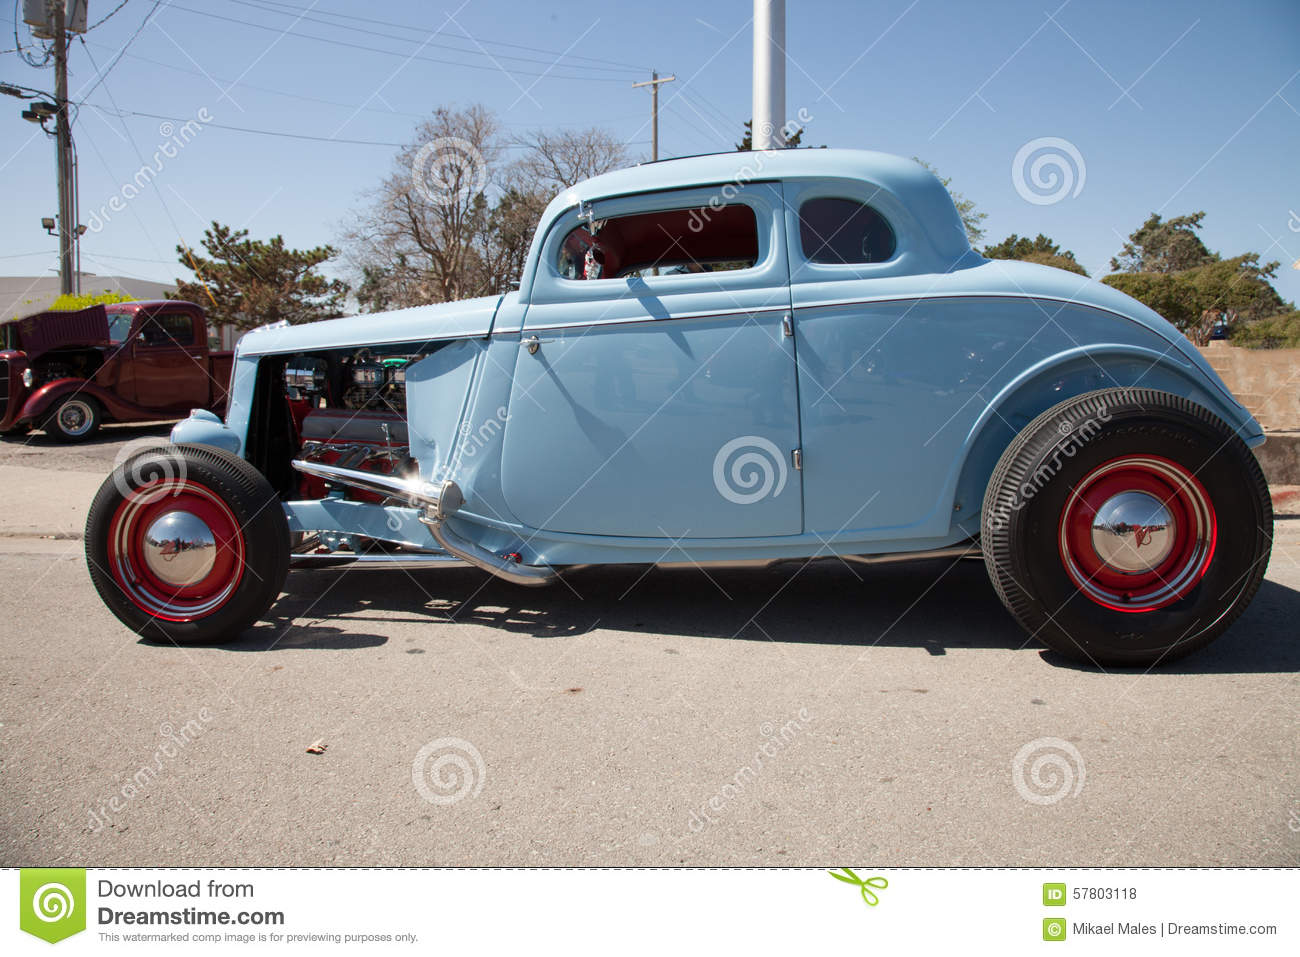 Baby Blue Hot Rod In Oklahoma Stock Photo - Image of autos, body ...